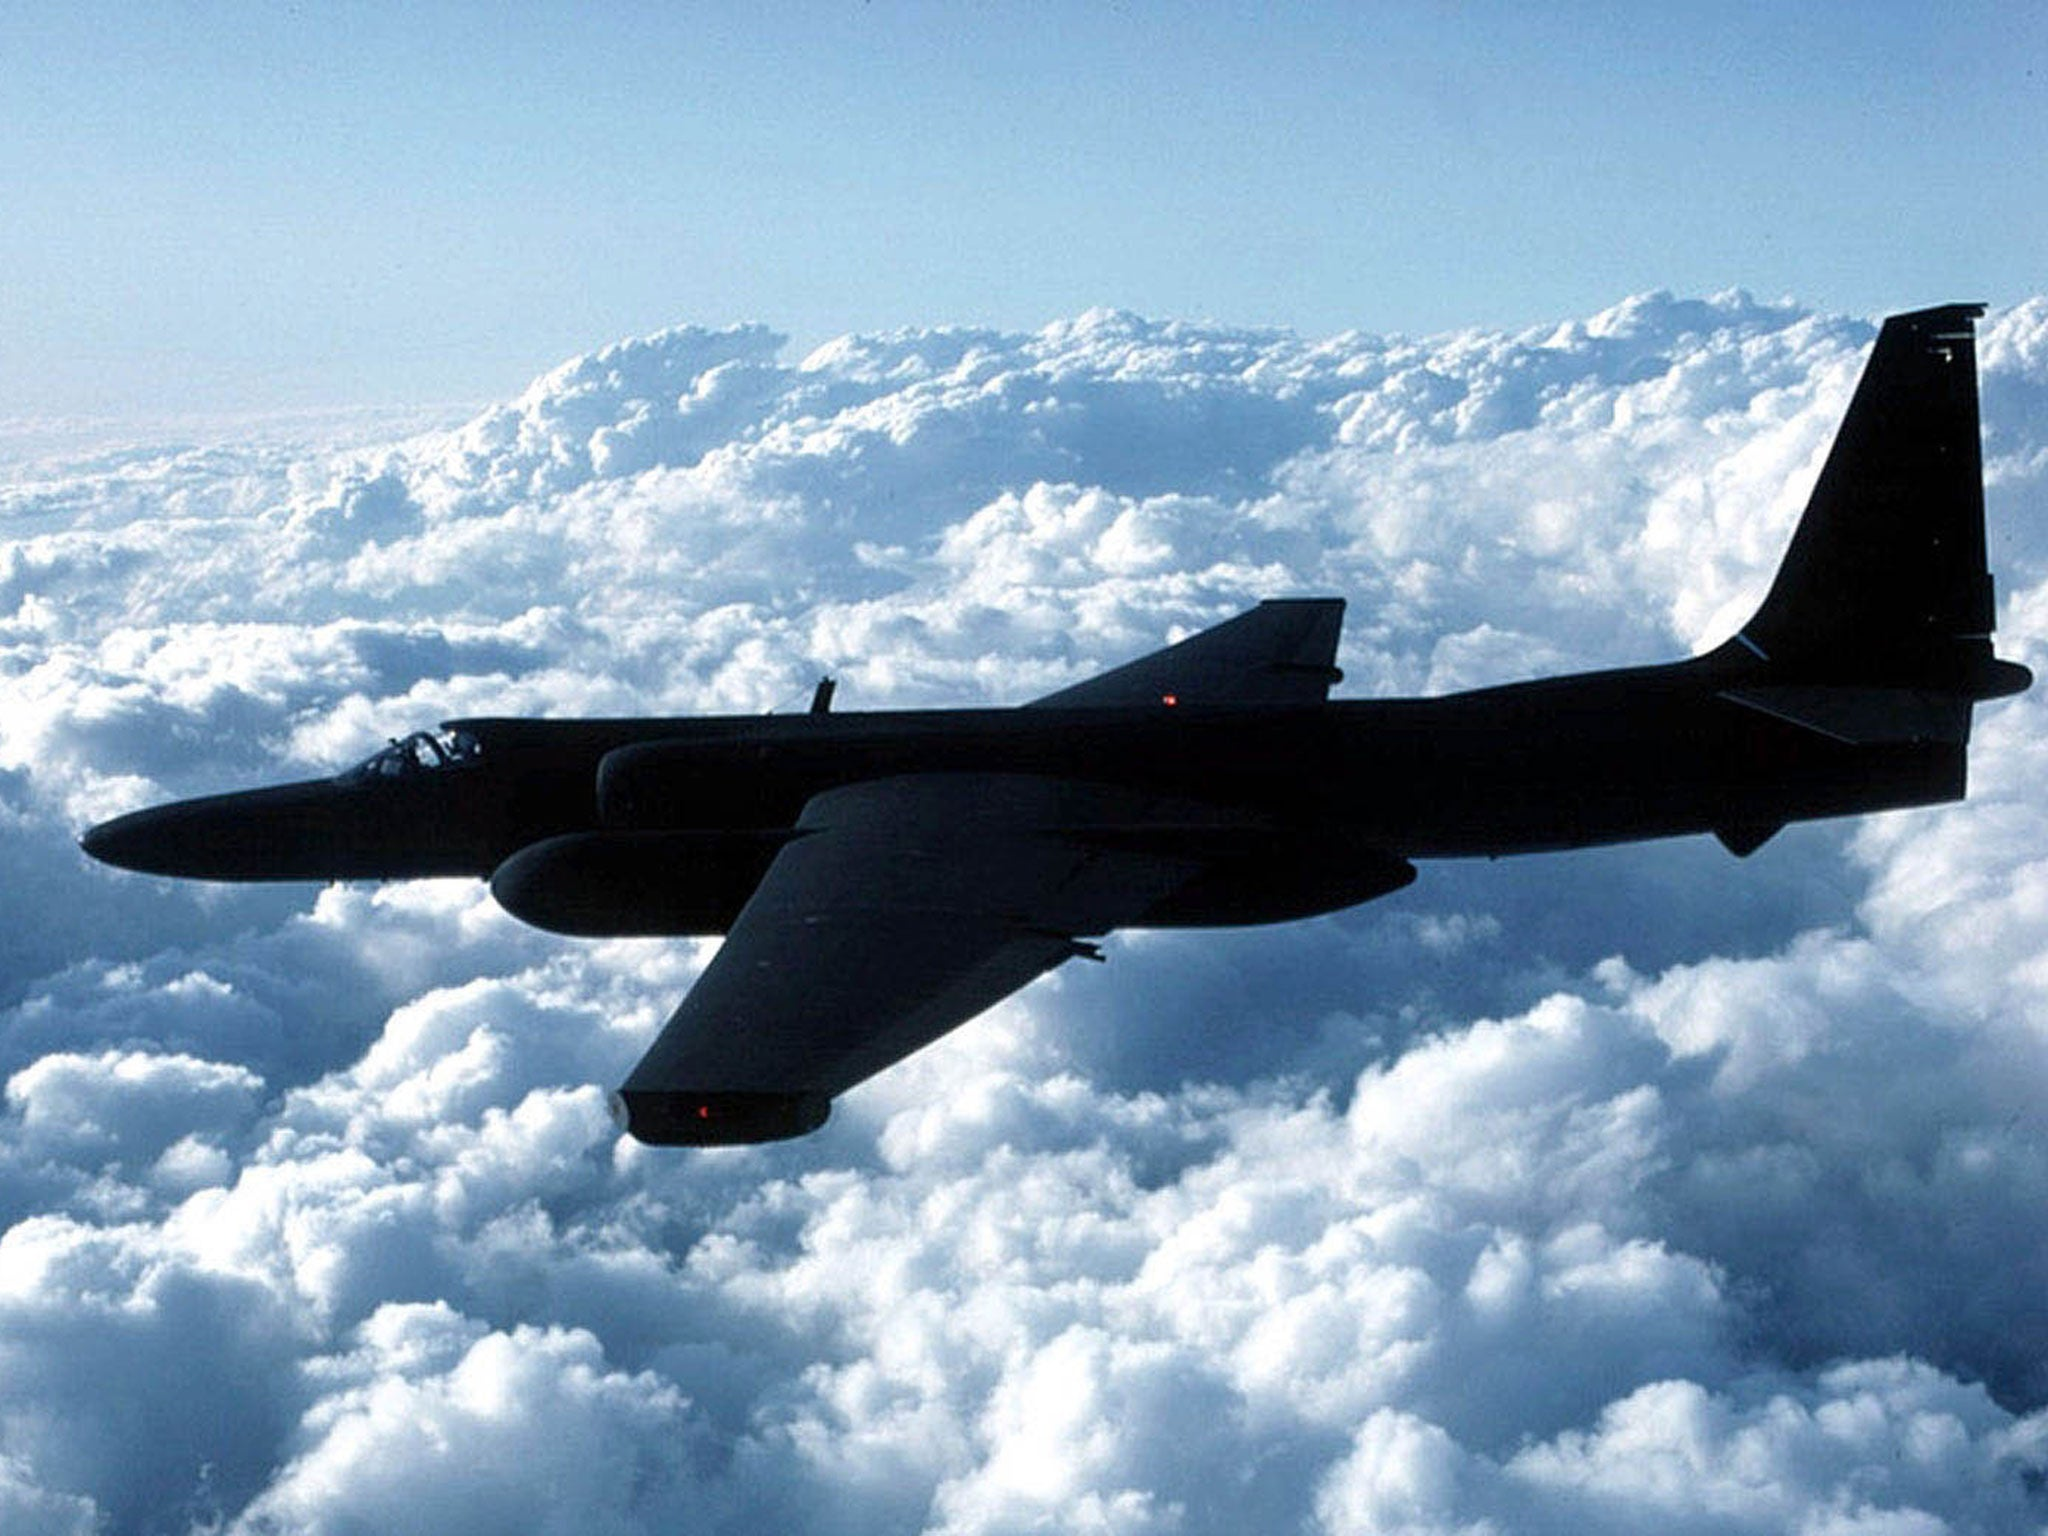 A US general wants to use U-2 spy plane to help conduct surveillance on Russia